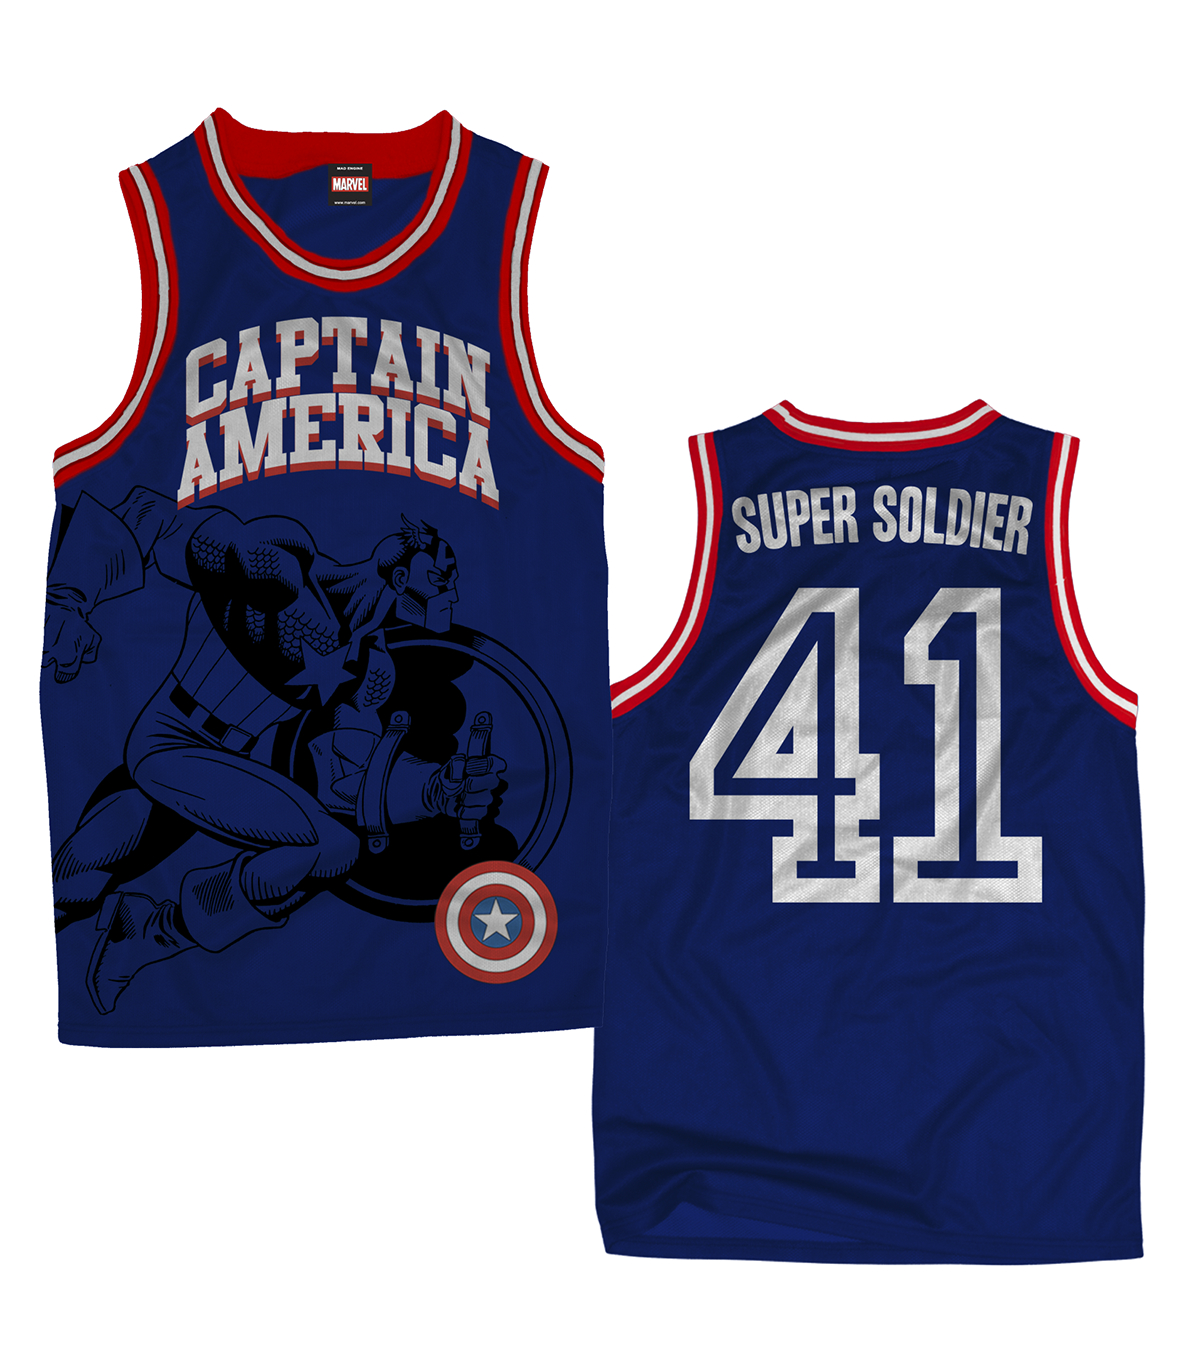 CAPTAIN AMERICA WE ARE #1 BASKETBALL JERSEY LG